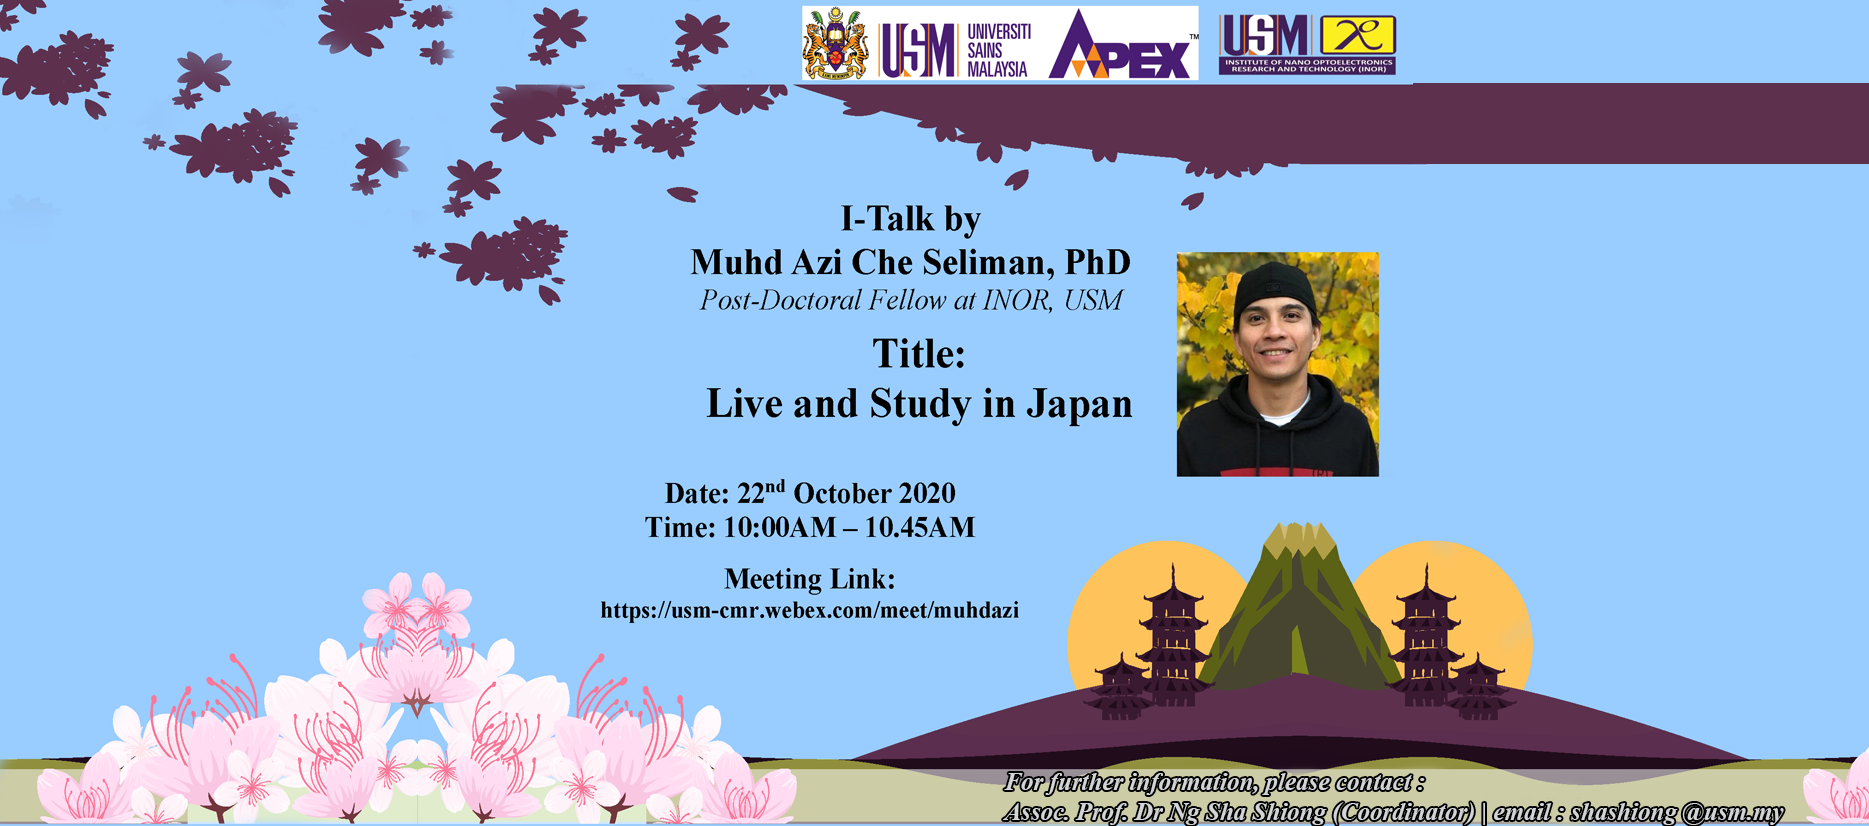 I-Talk: Live and Study in Japan